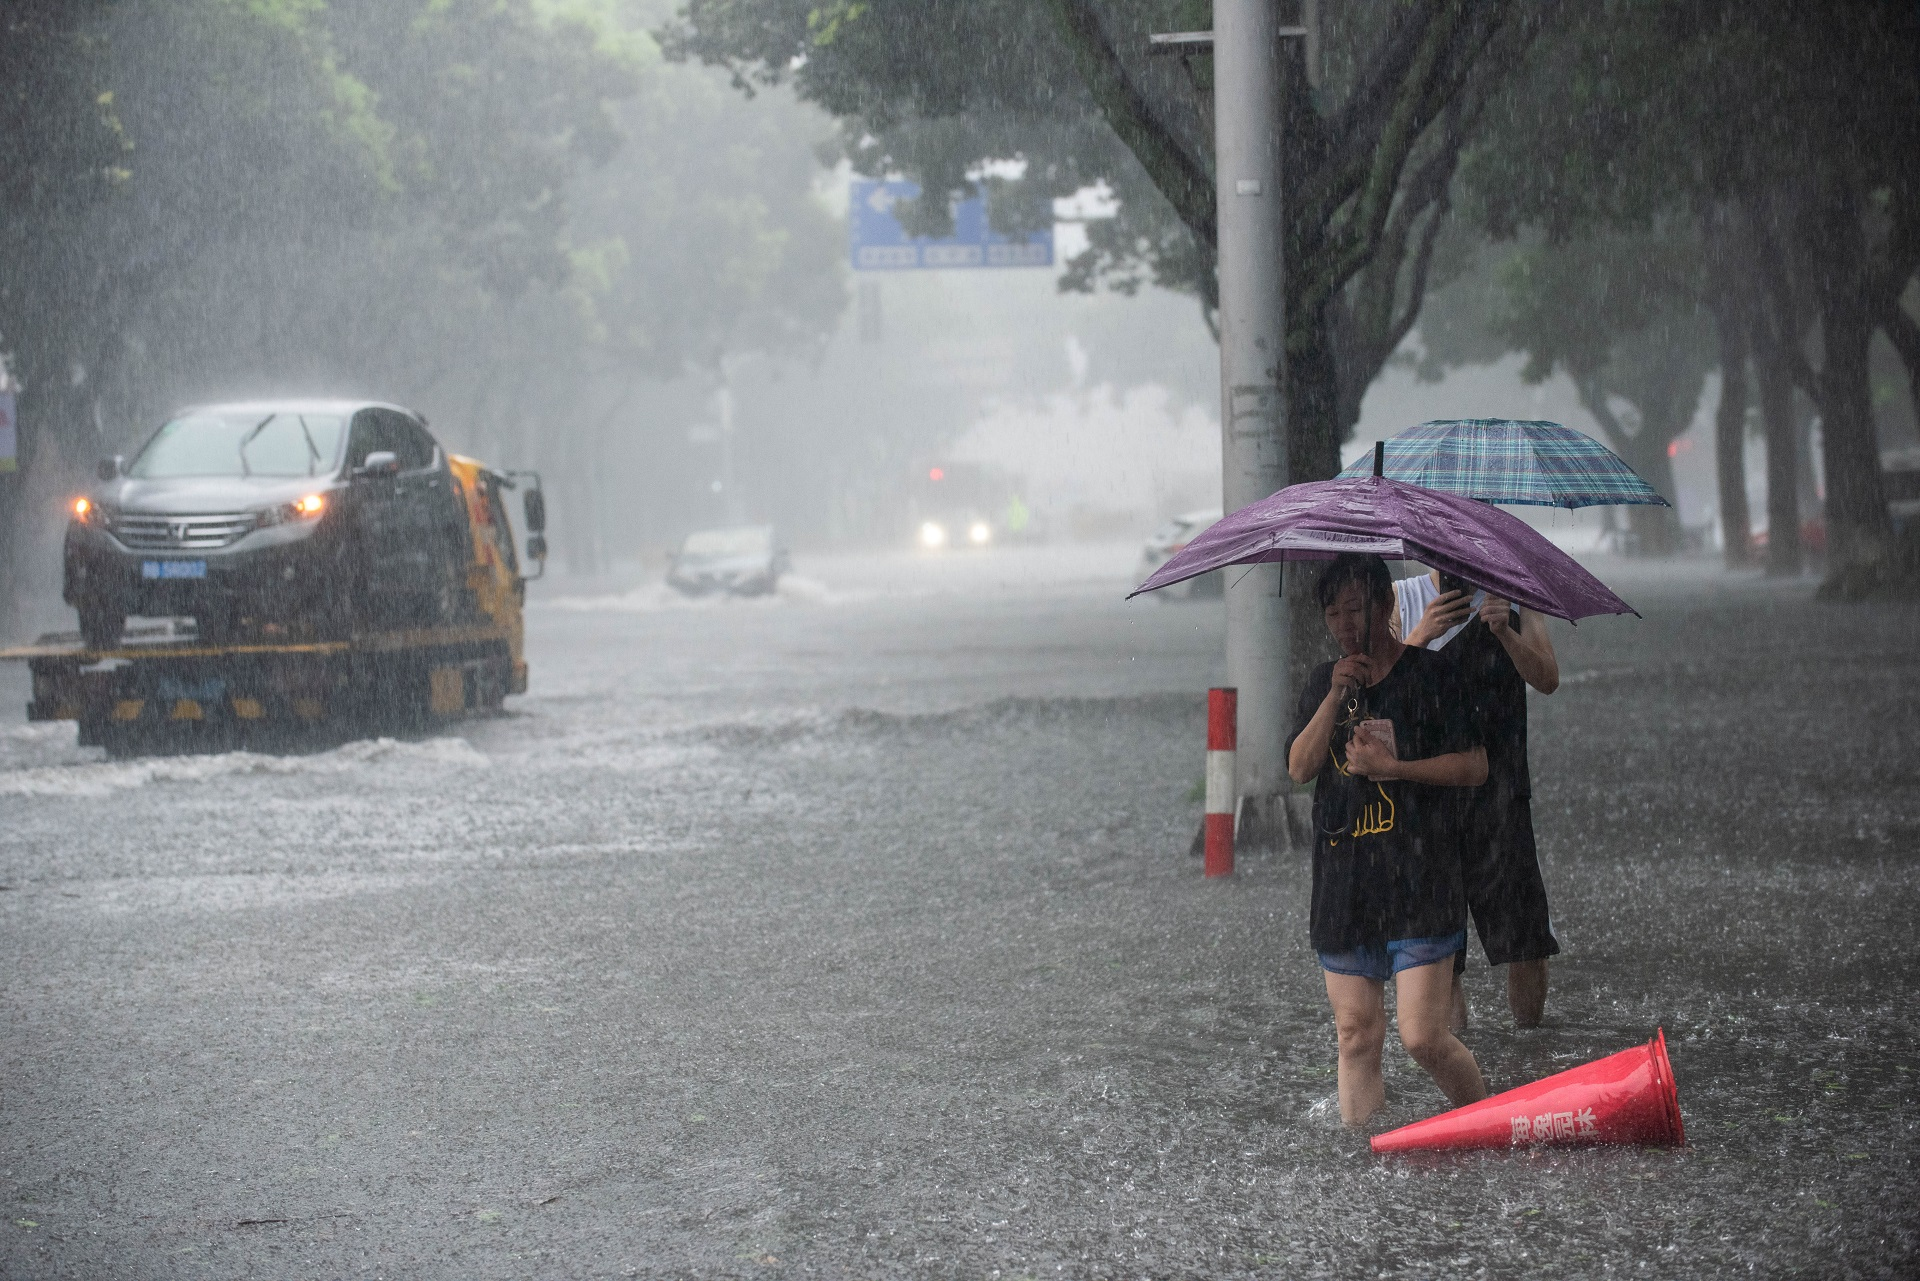 People holding umbrellas wade through floodwaters amid heavy rainfall on a street after super typhoon Lekima made landfall in Ningbo, Zhejiang province, China August 10, 2019.  REUTERS/Stringer